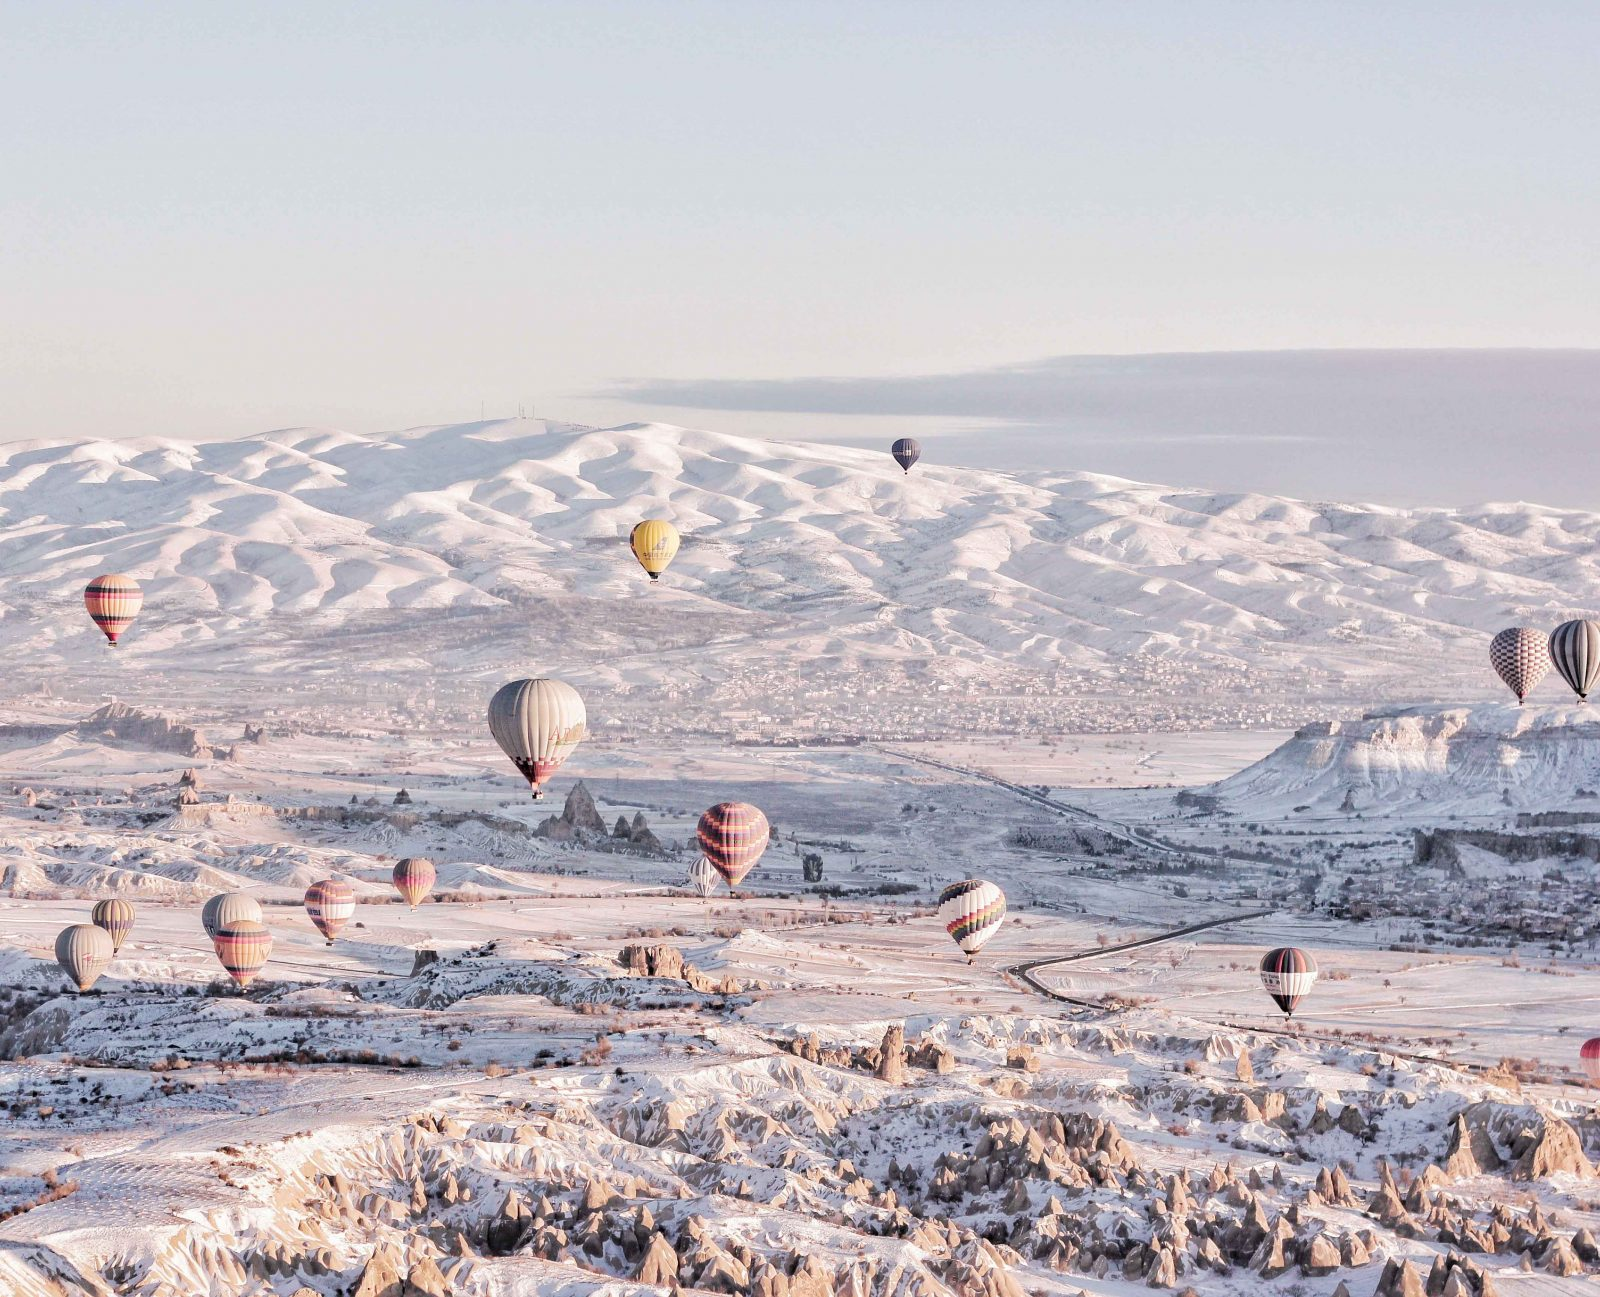 cappadocia hot air balloons during winter_